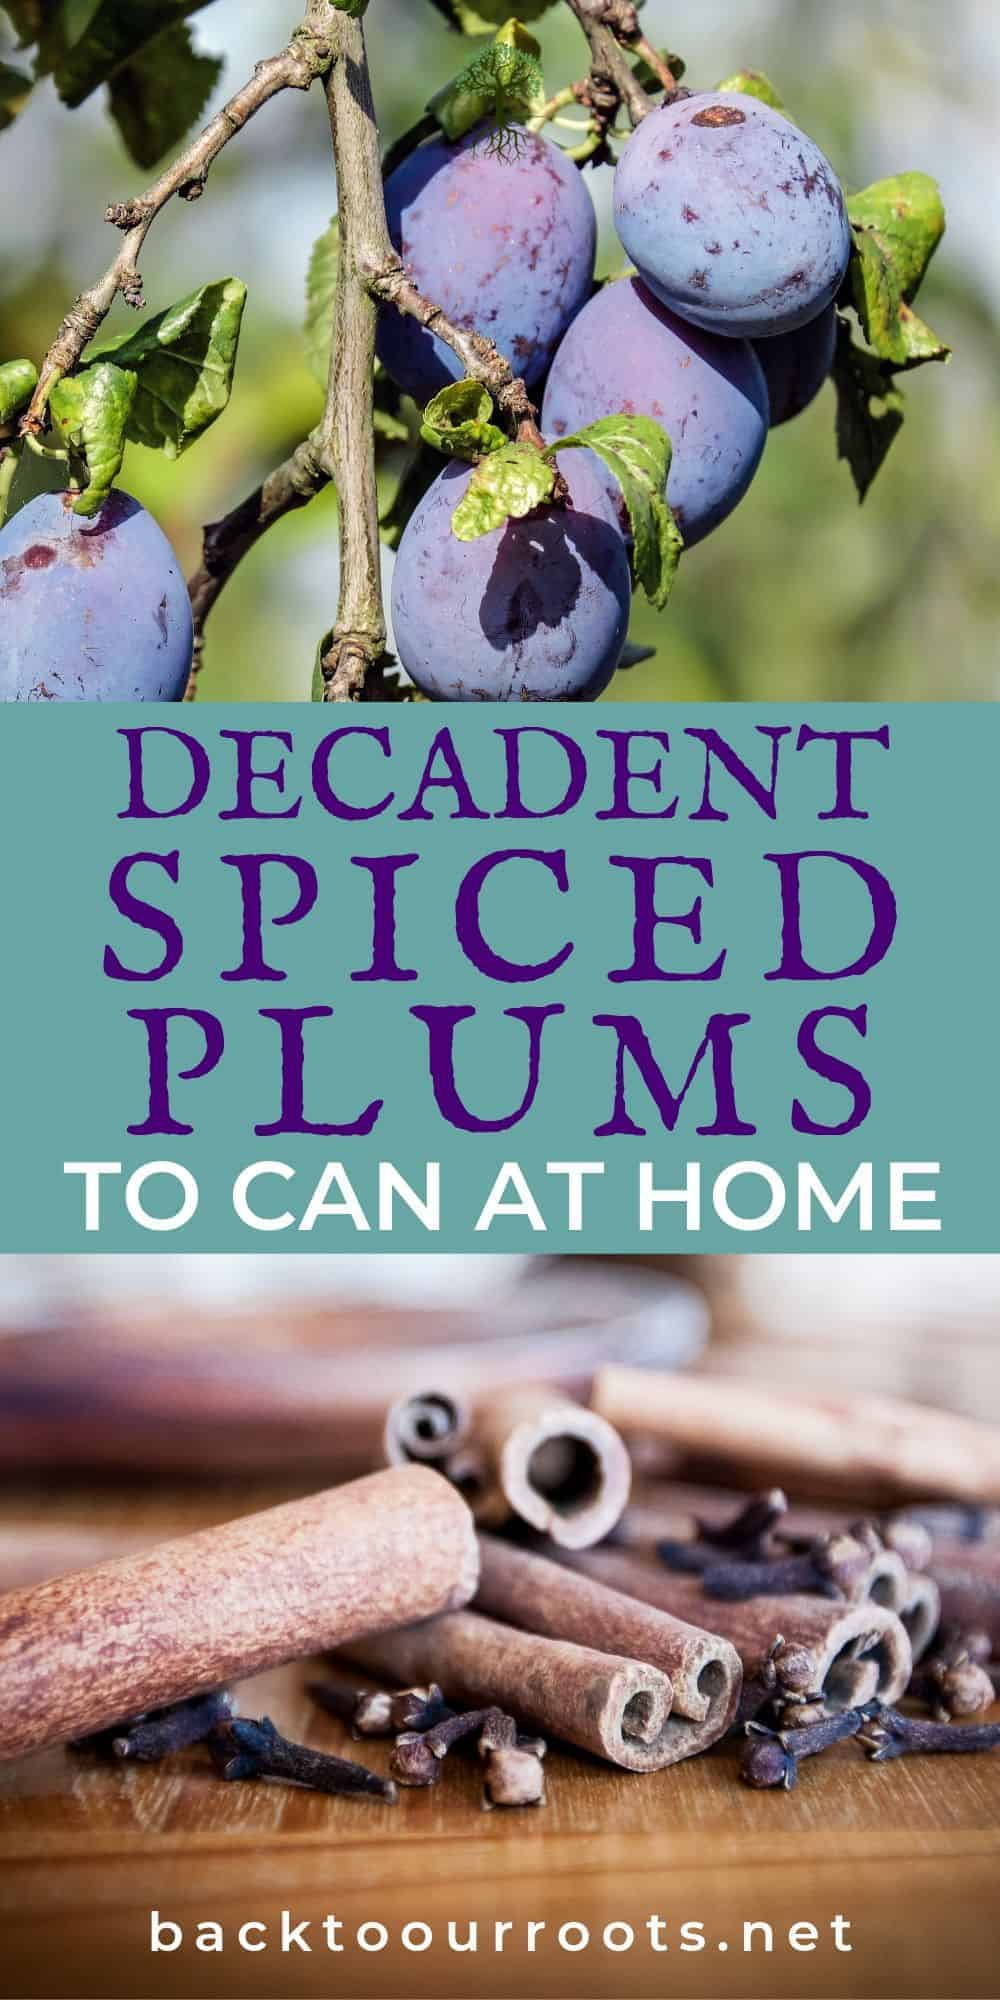 How to Can Spiced Plums